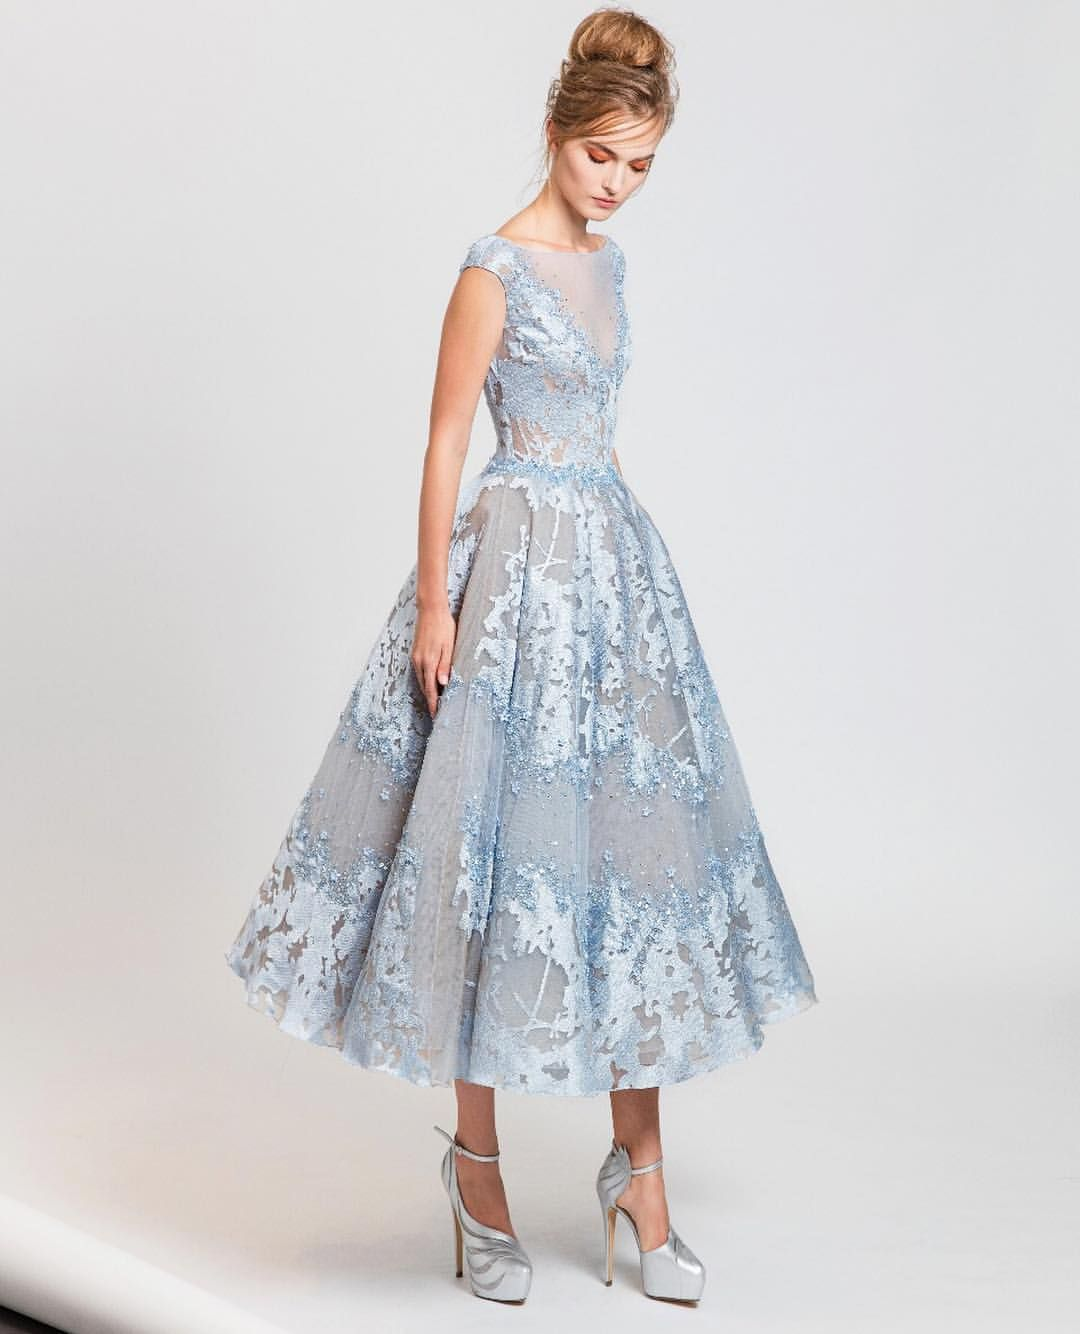 Beautiful in blue tony ward springsummer rtw collection